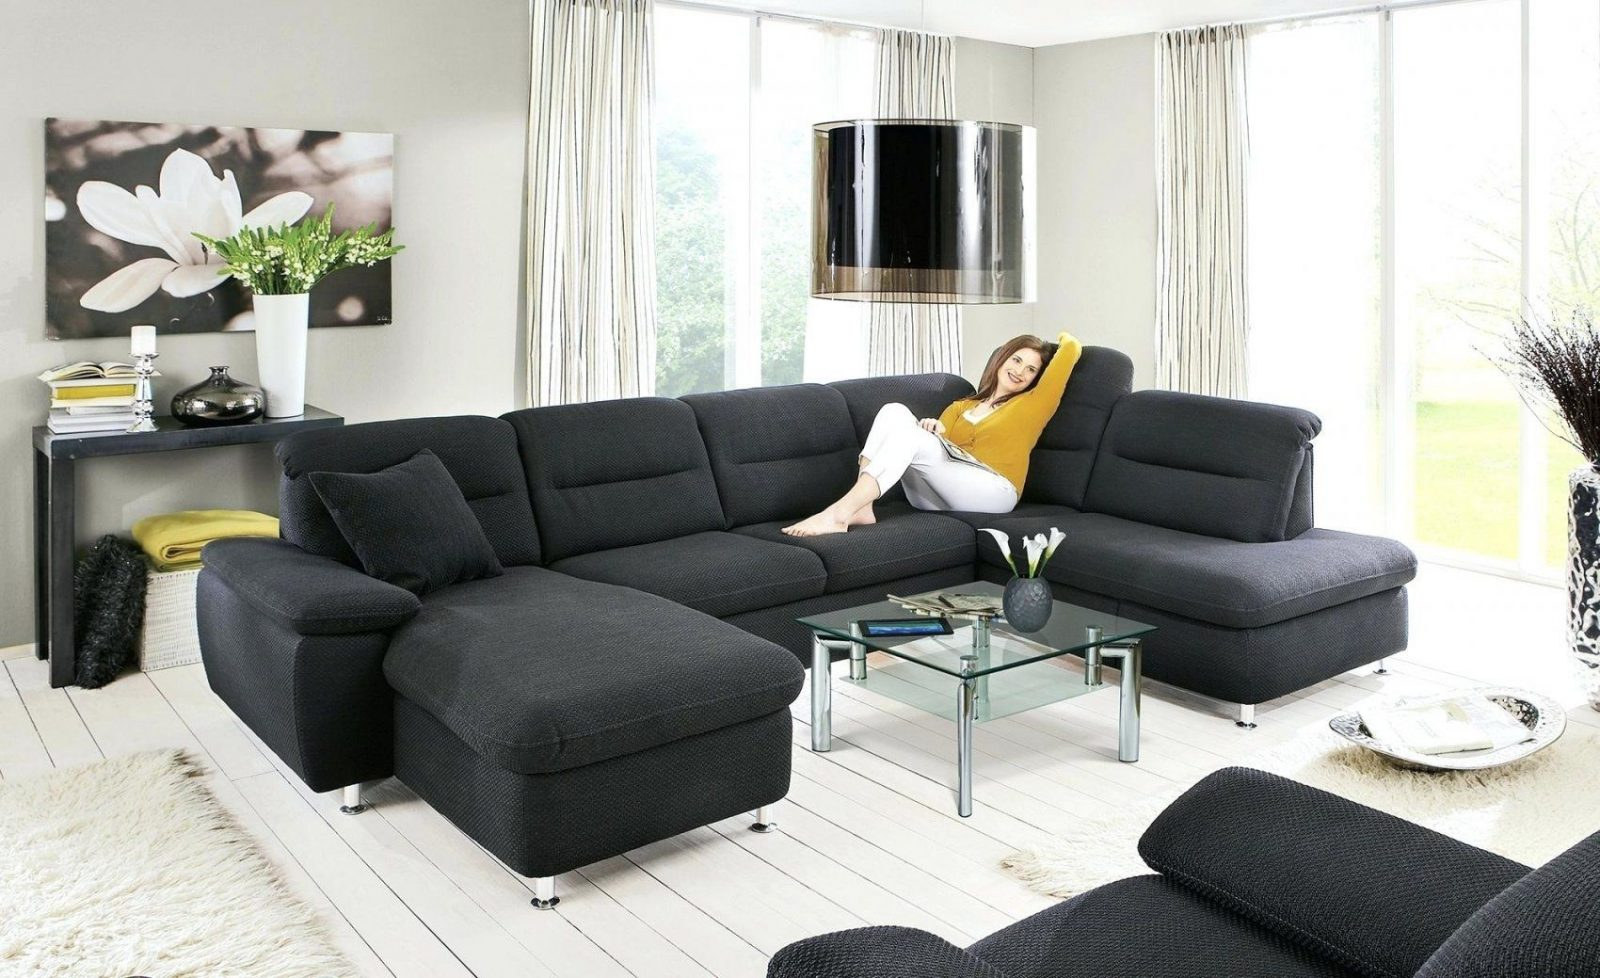 Couch Anthrazit Brooke Sofa Anthrazitwandfarbe Wohnzimmer Xxl von Anthrazit Couch Wohnzimmer Farbe Photo